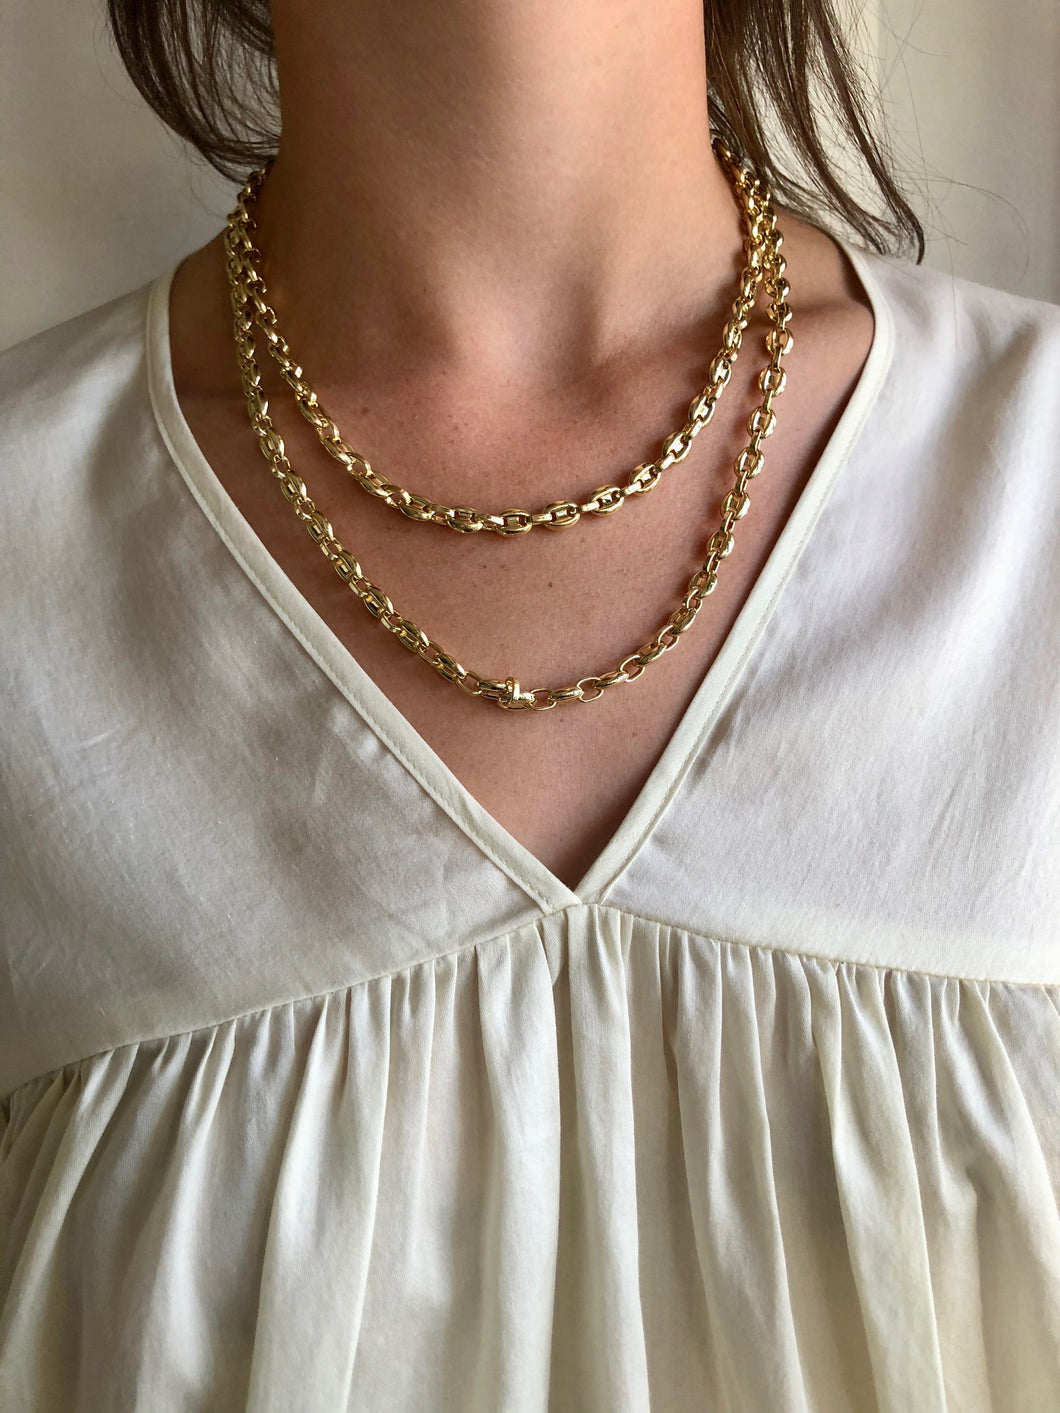 Machete Petite Coffee Bead Necklace / Gold